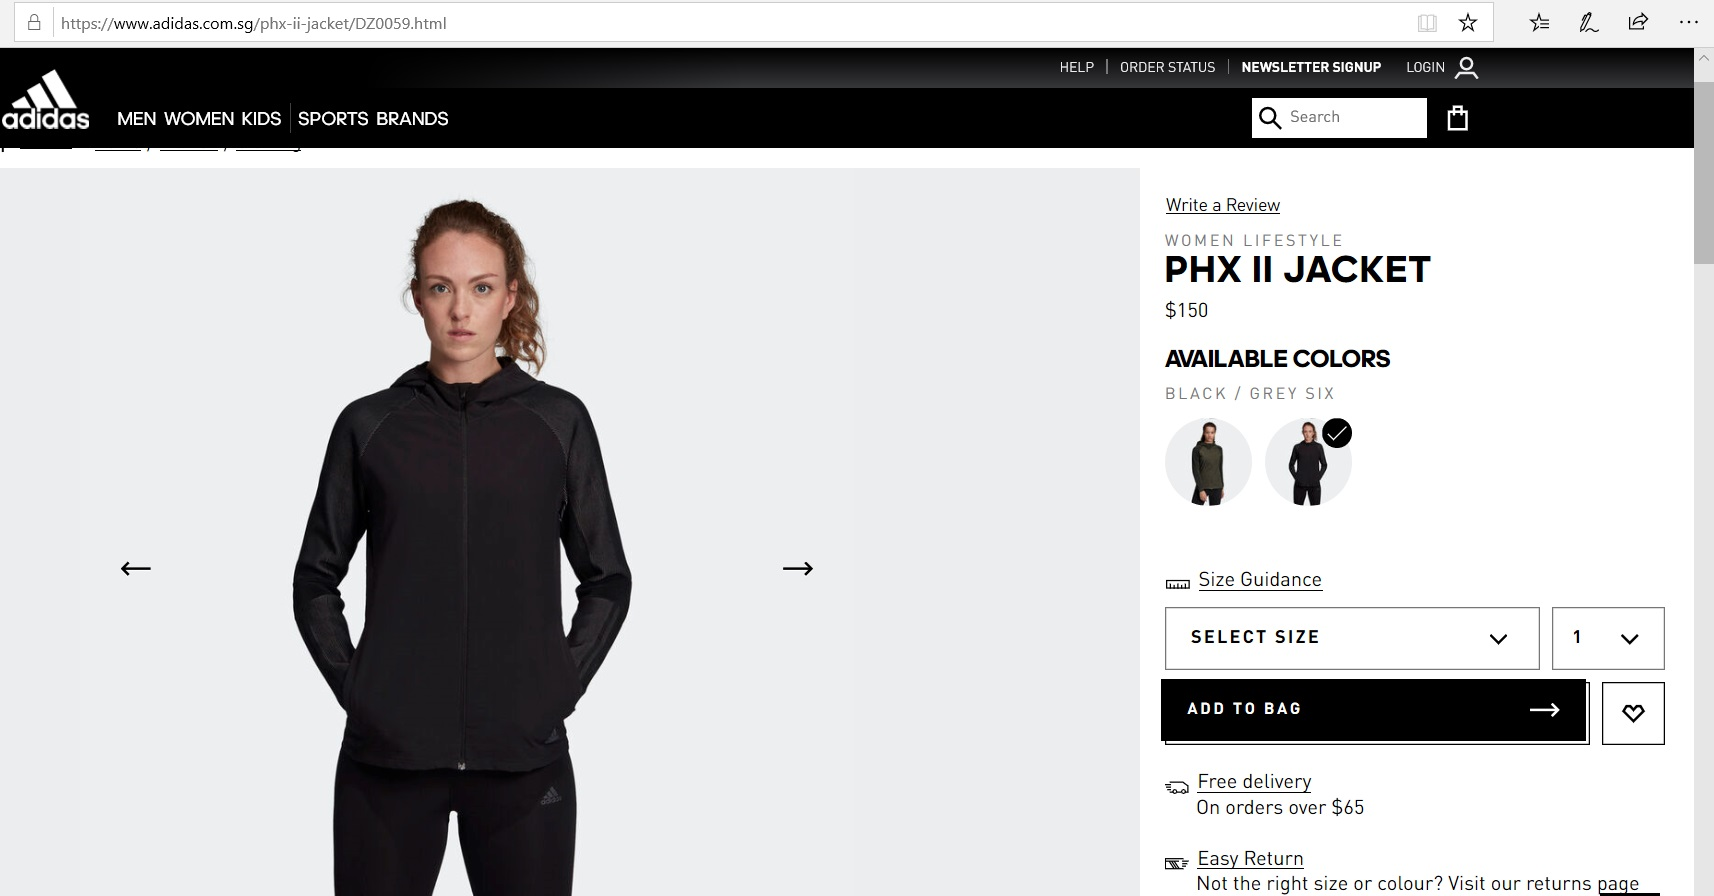 Product description of an Adidas jacket.